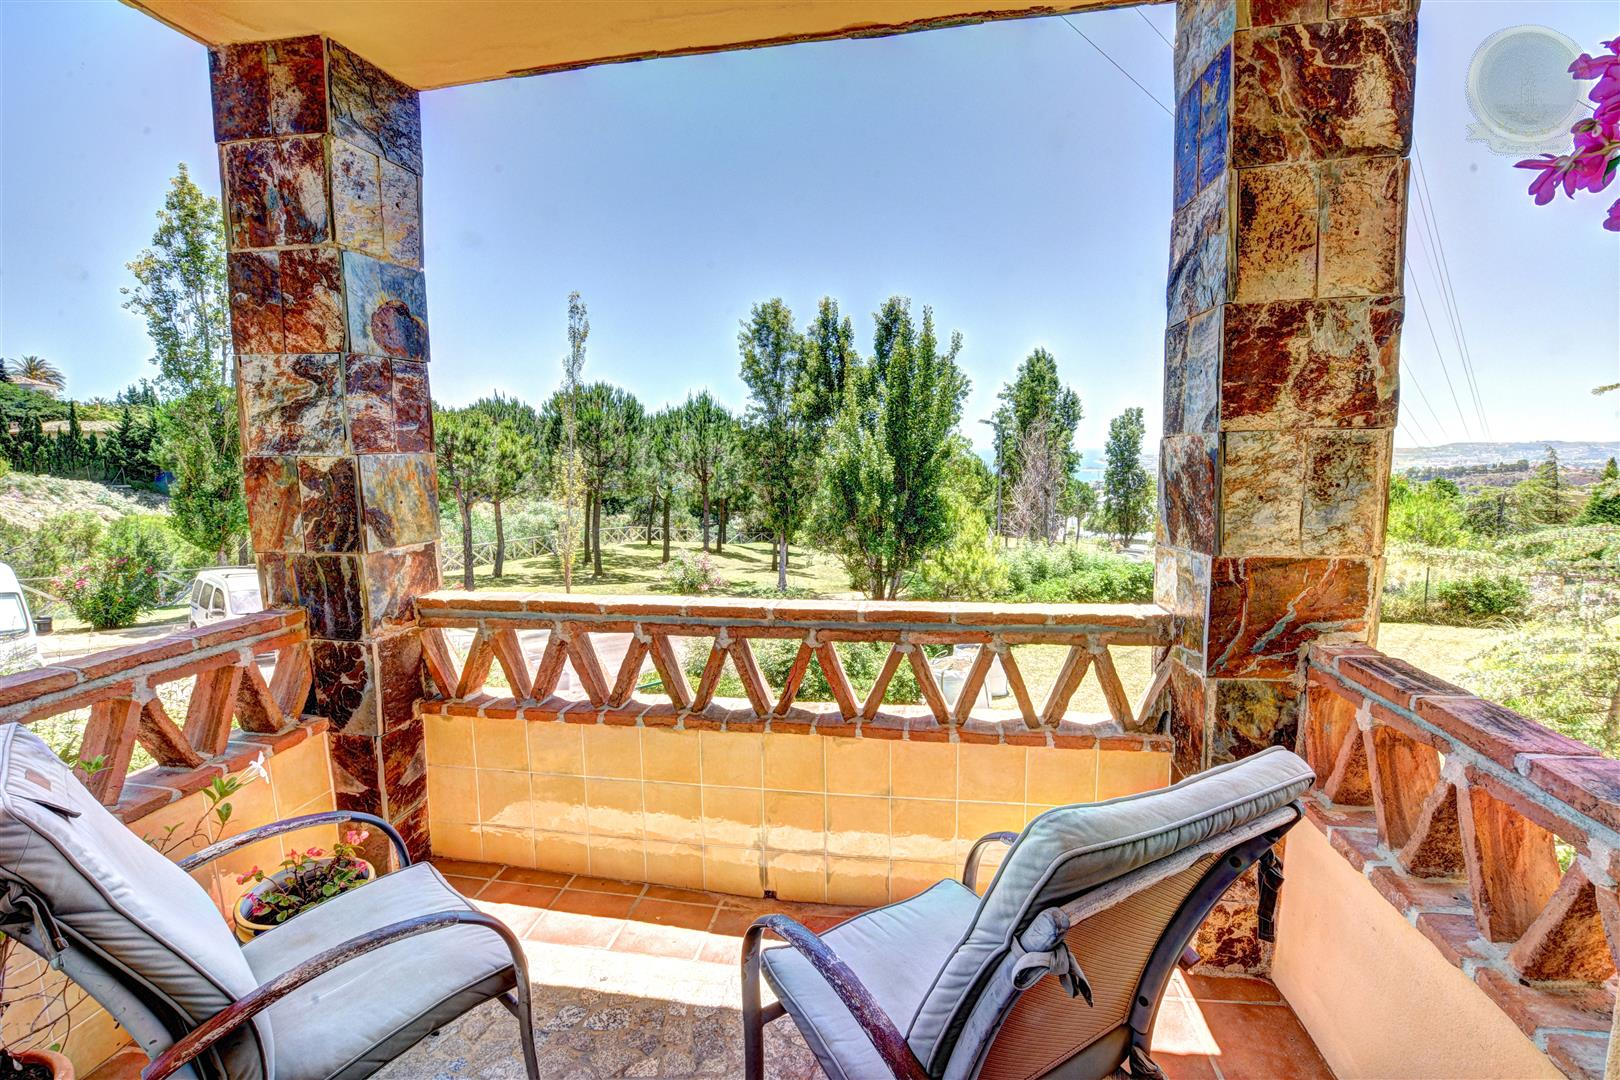 Apartment for sale in Reserva del Higueron - terrace view